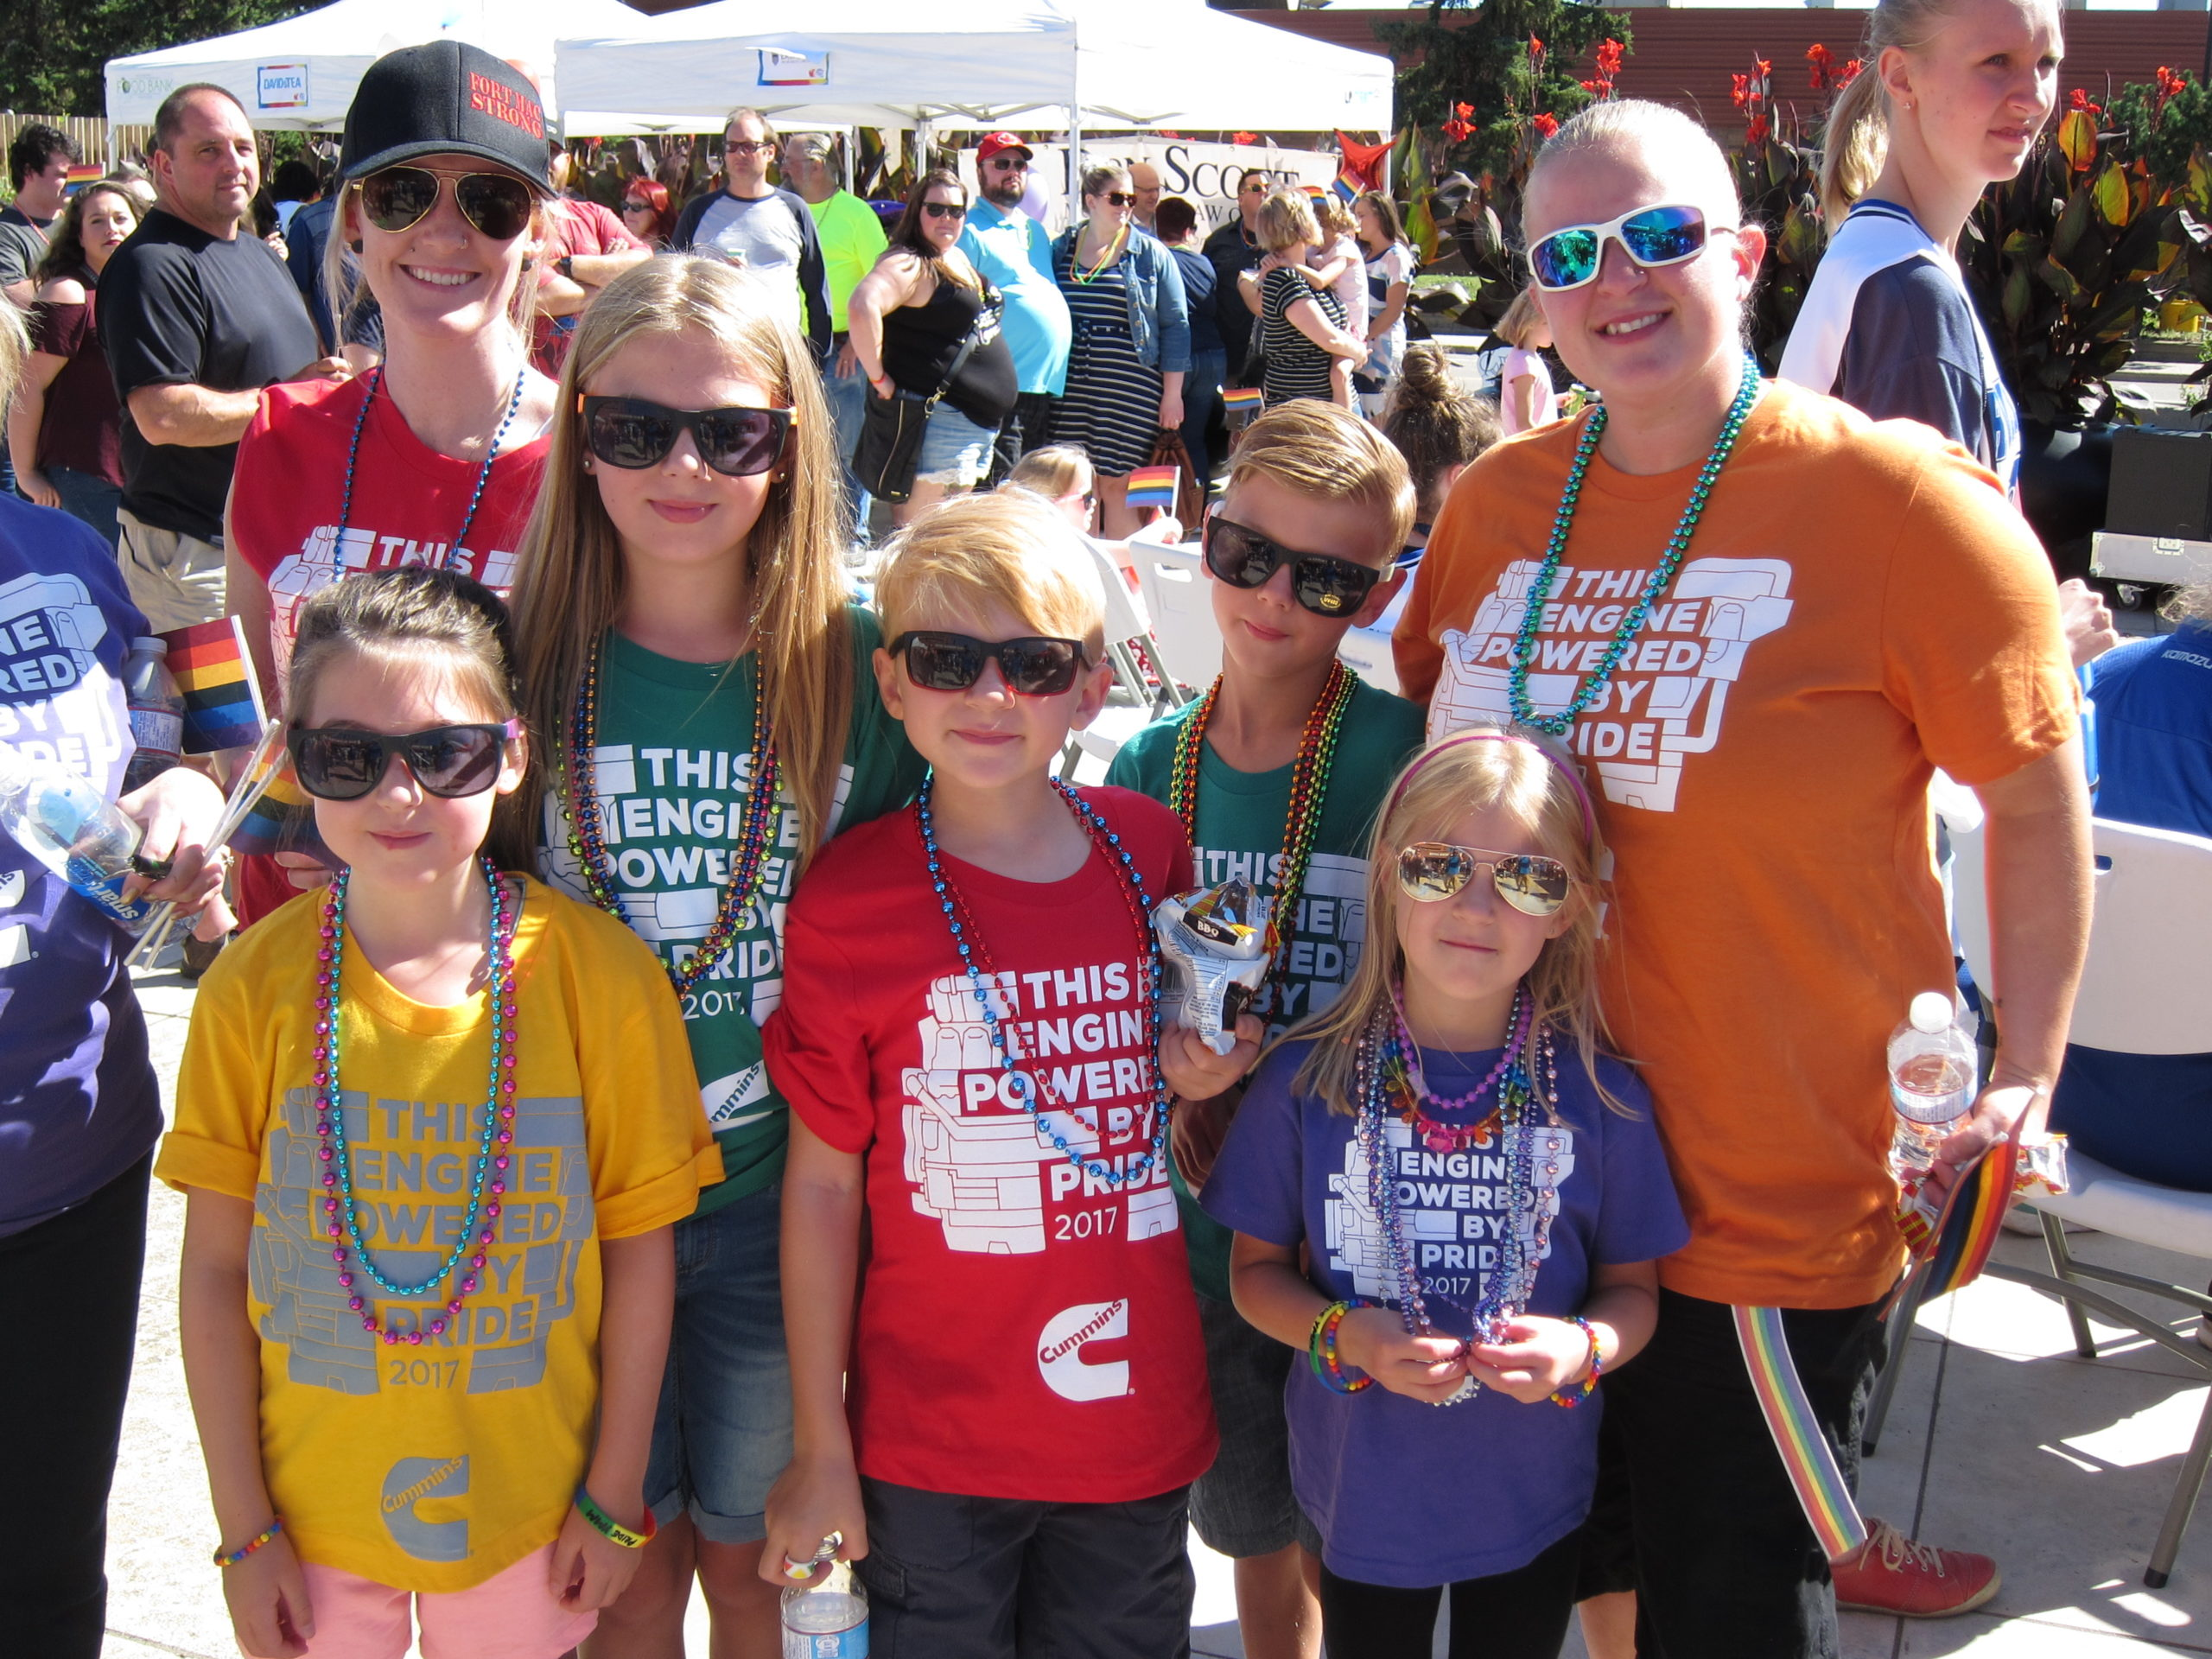 Pride YMM Community Gathering Draws Big Crowd of Supporters